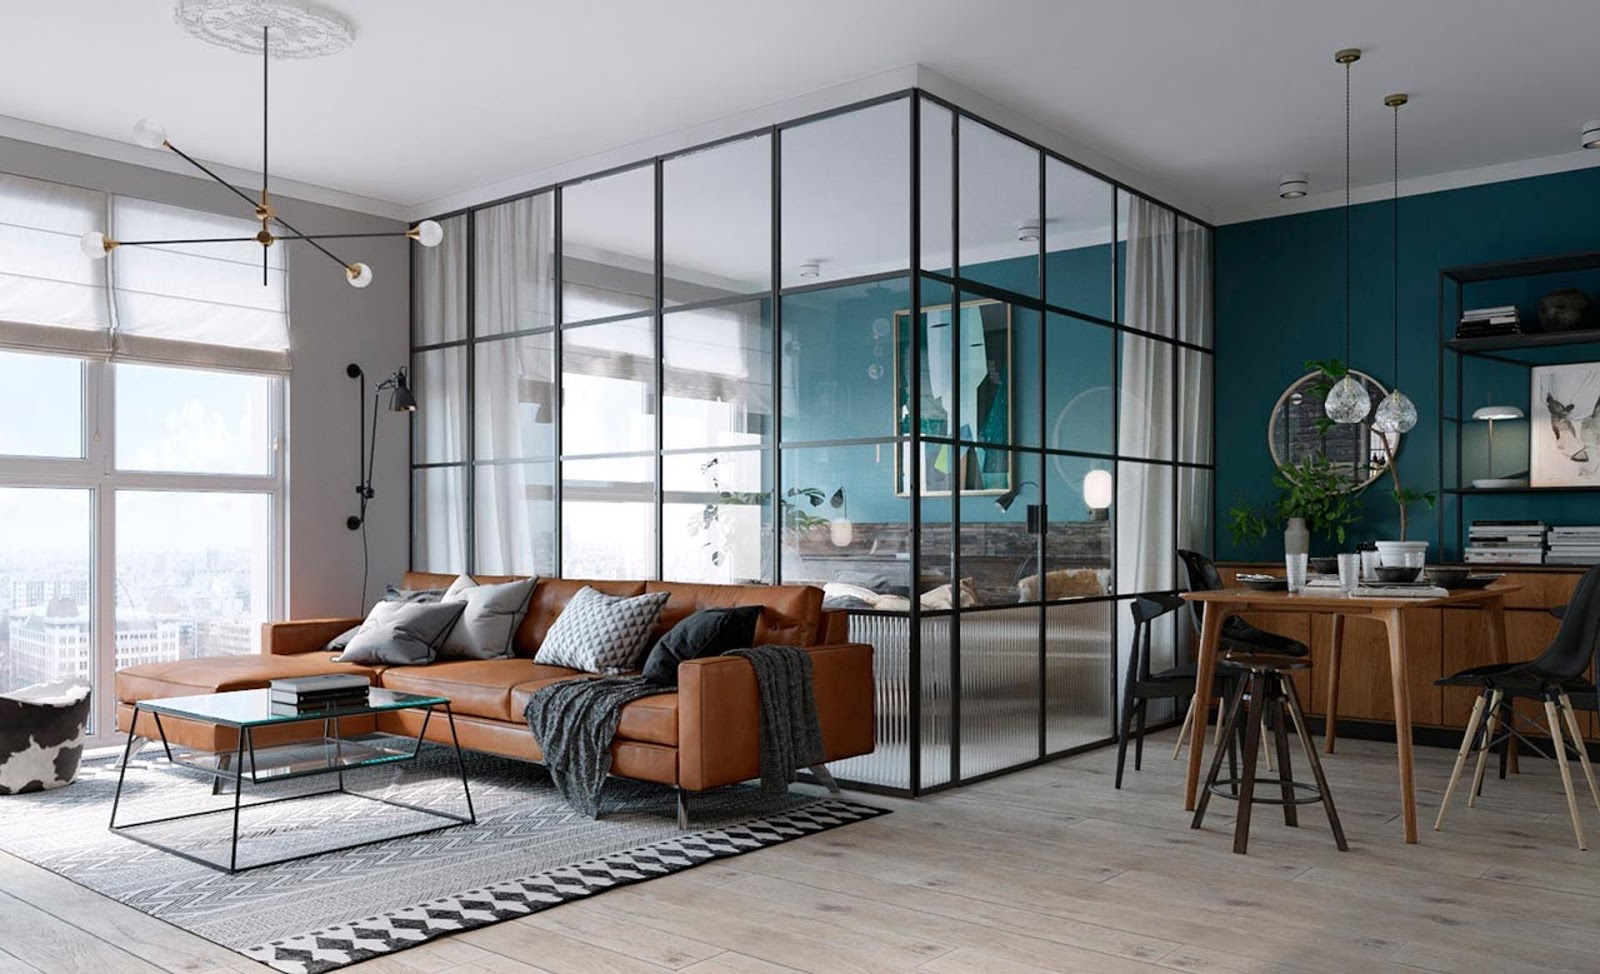 Tiny Kiev loft interior with eames chairs, glass walls